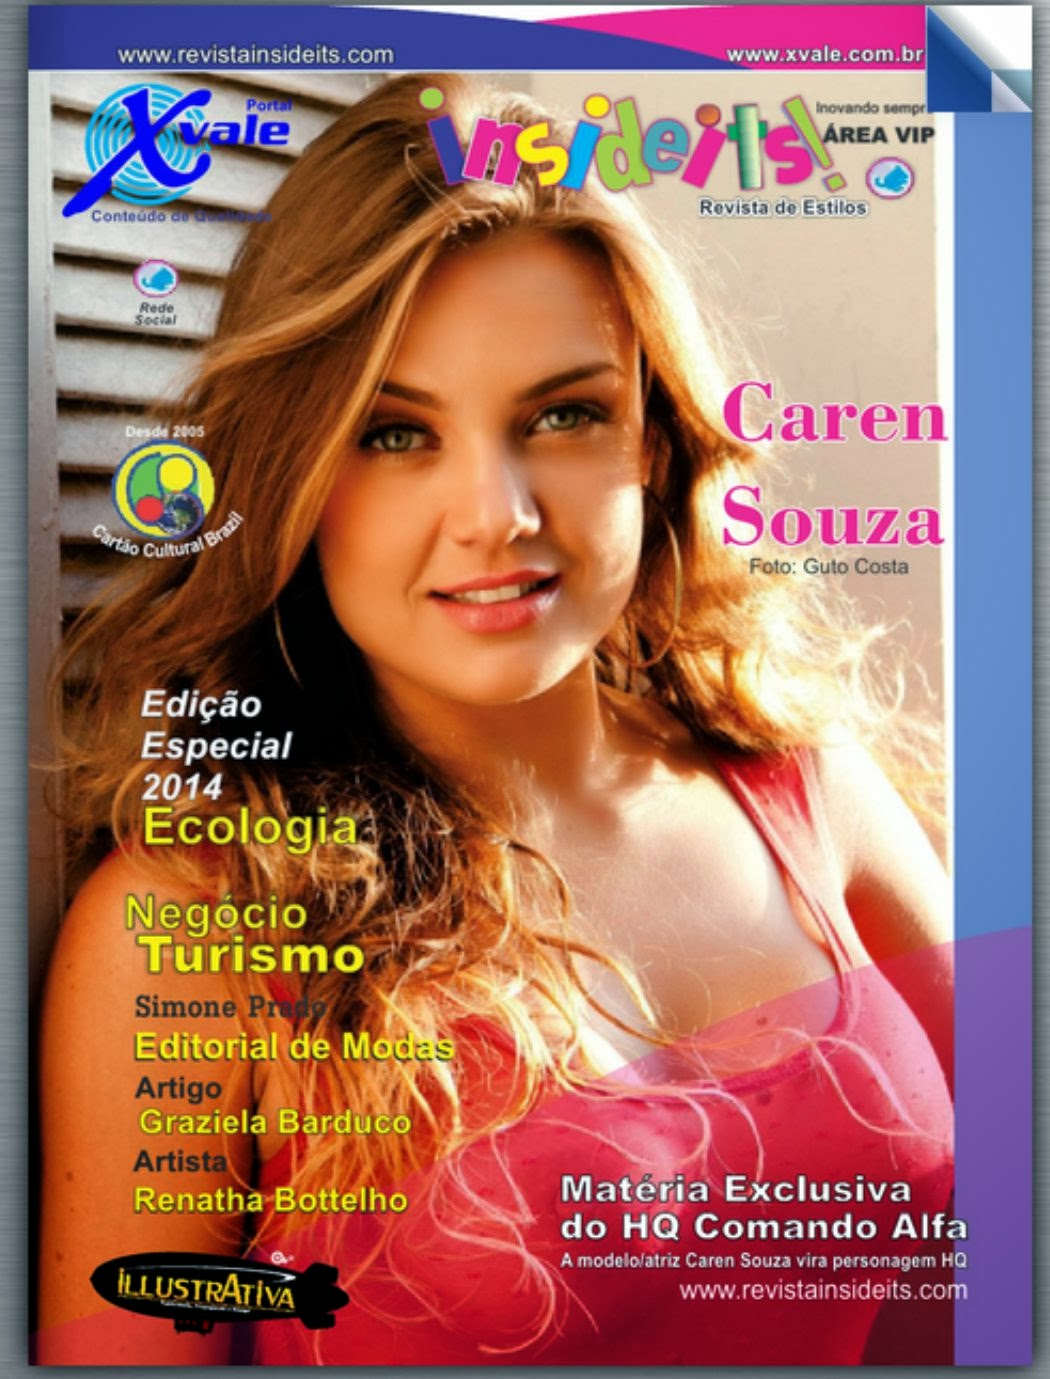 http://www.youblisher.com/p/812068-RevistaInsideIts2014/